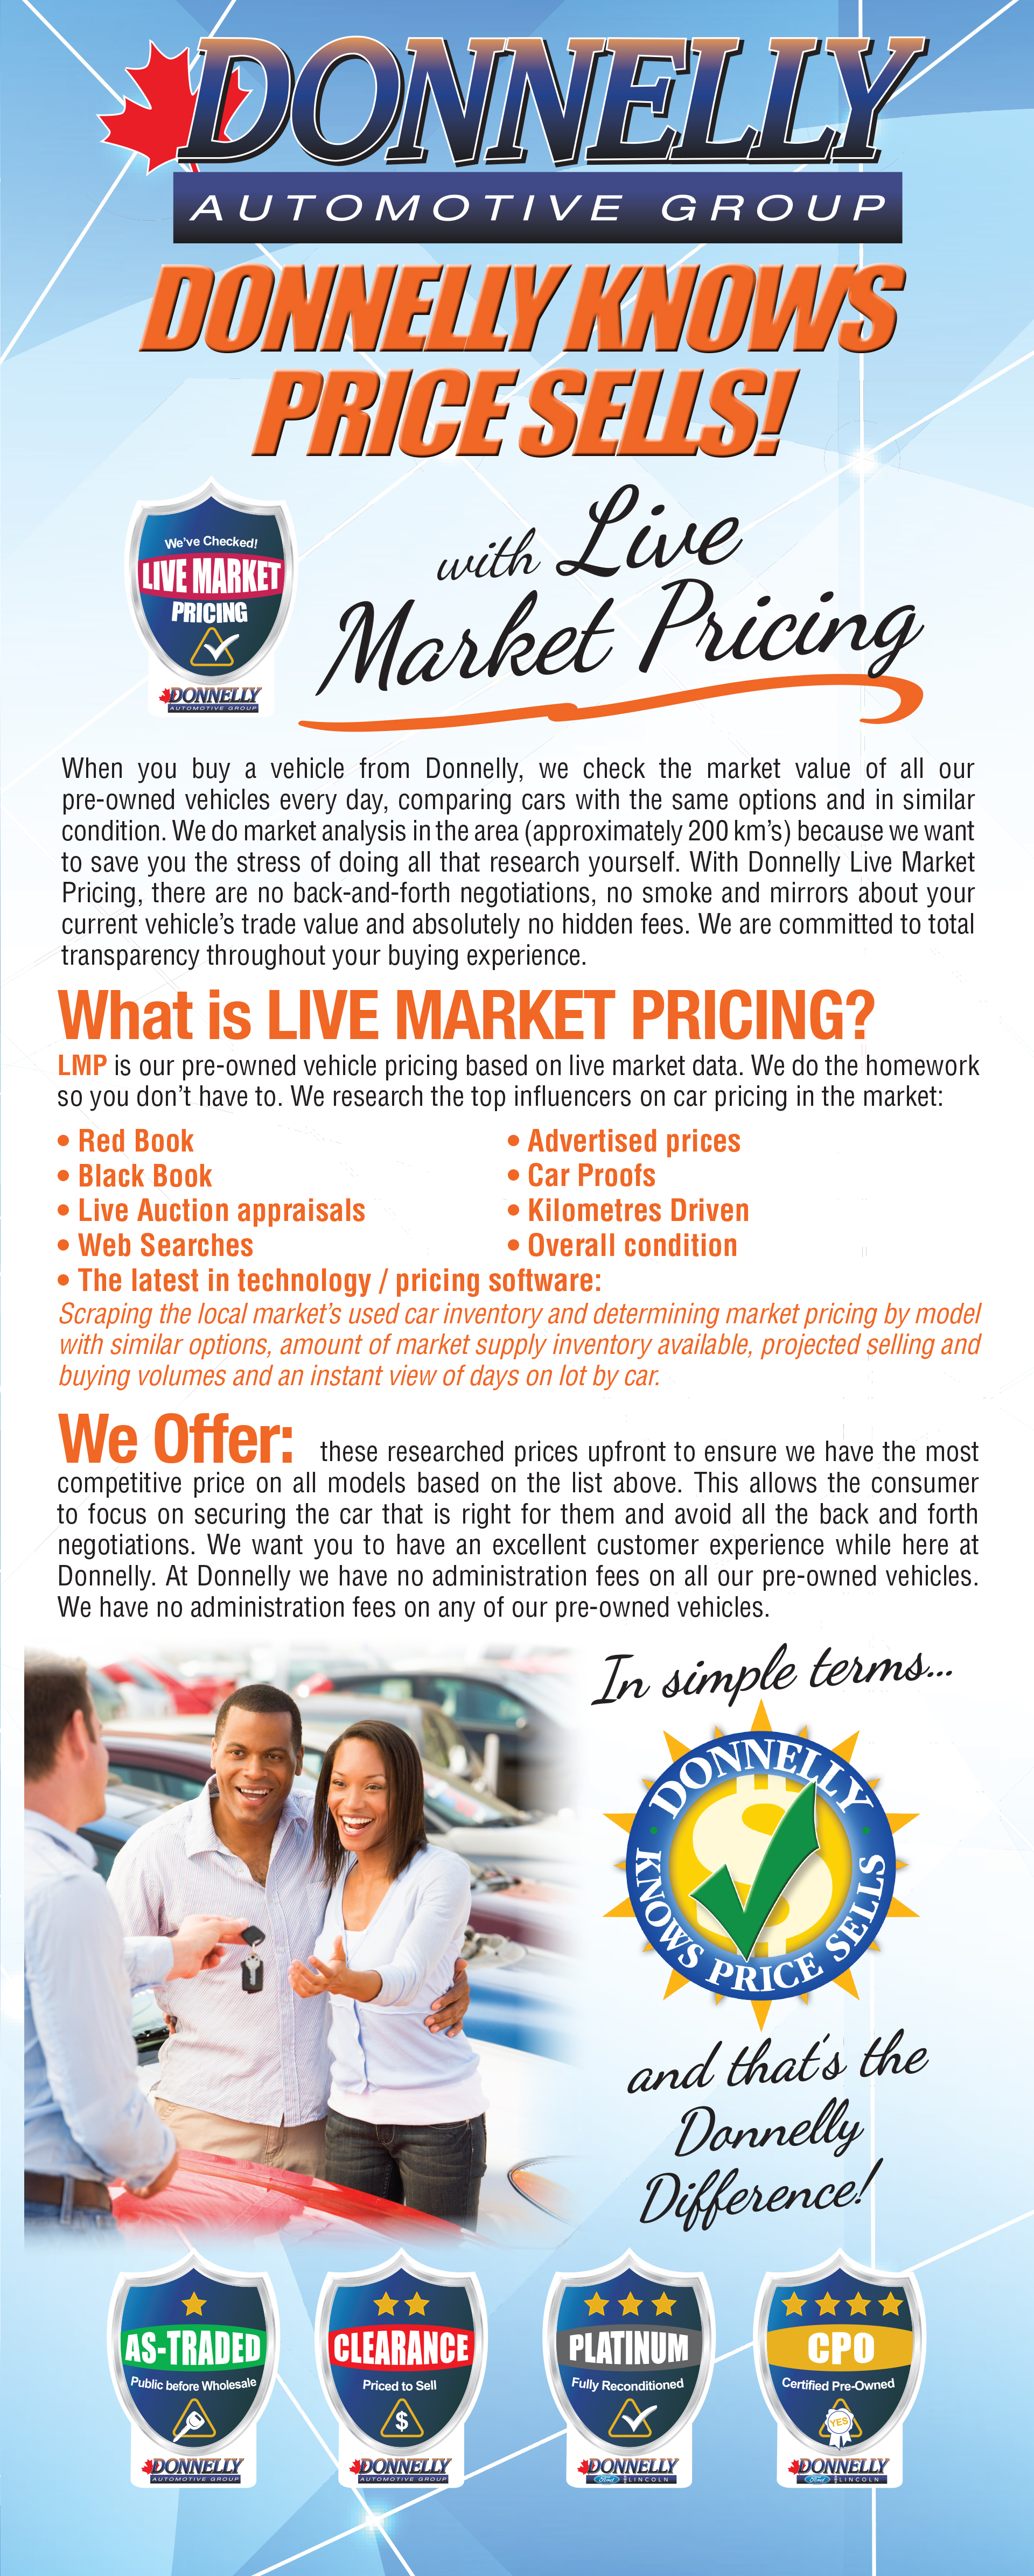 LiveMarketPricing